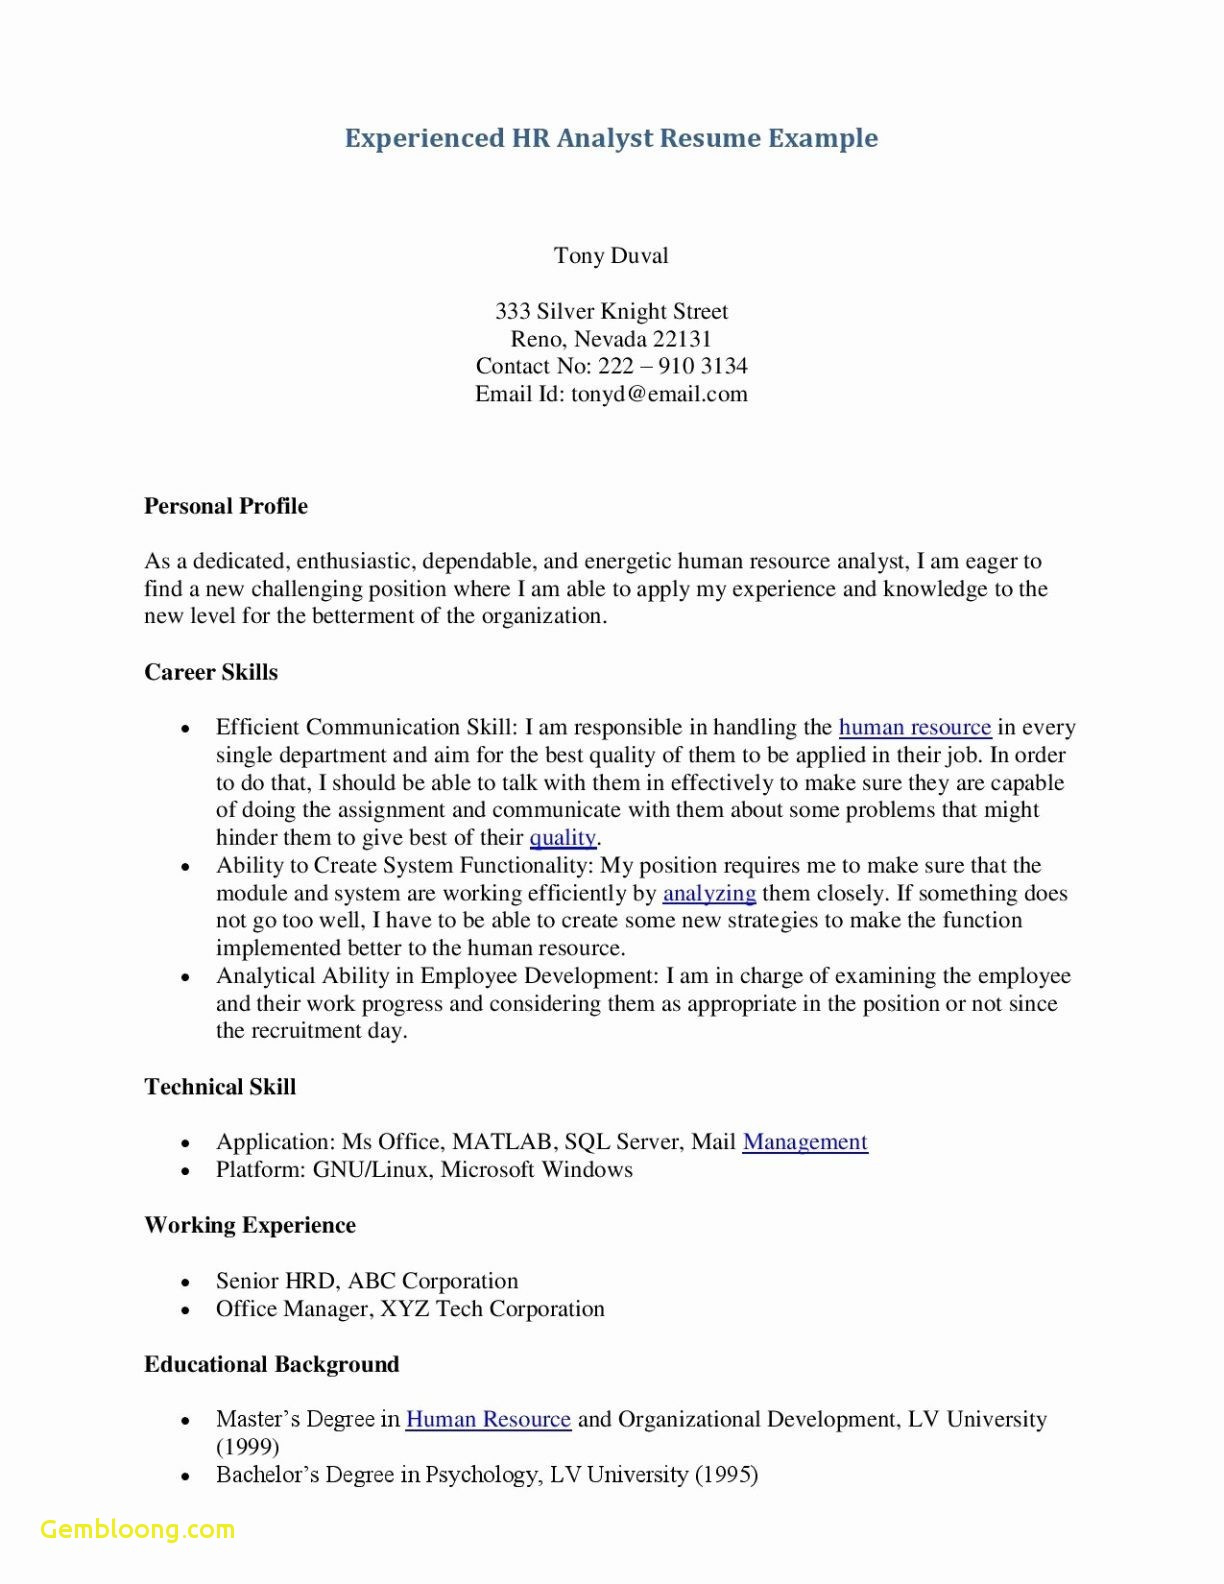 Rental Resume Template - Rental Cover Letter Template Examples